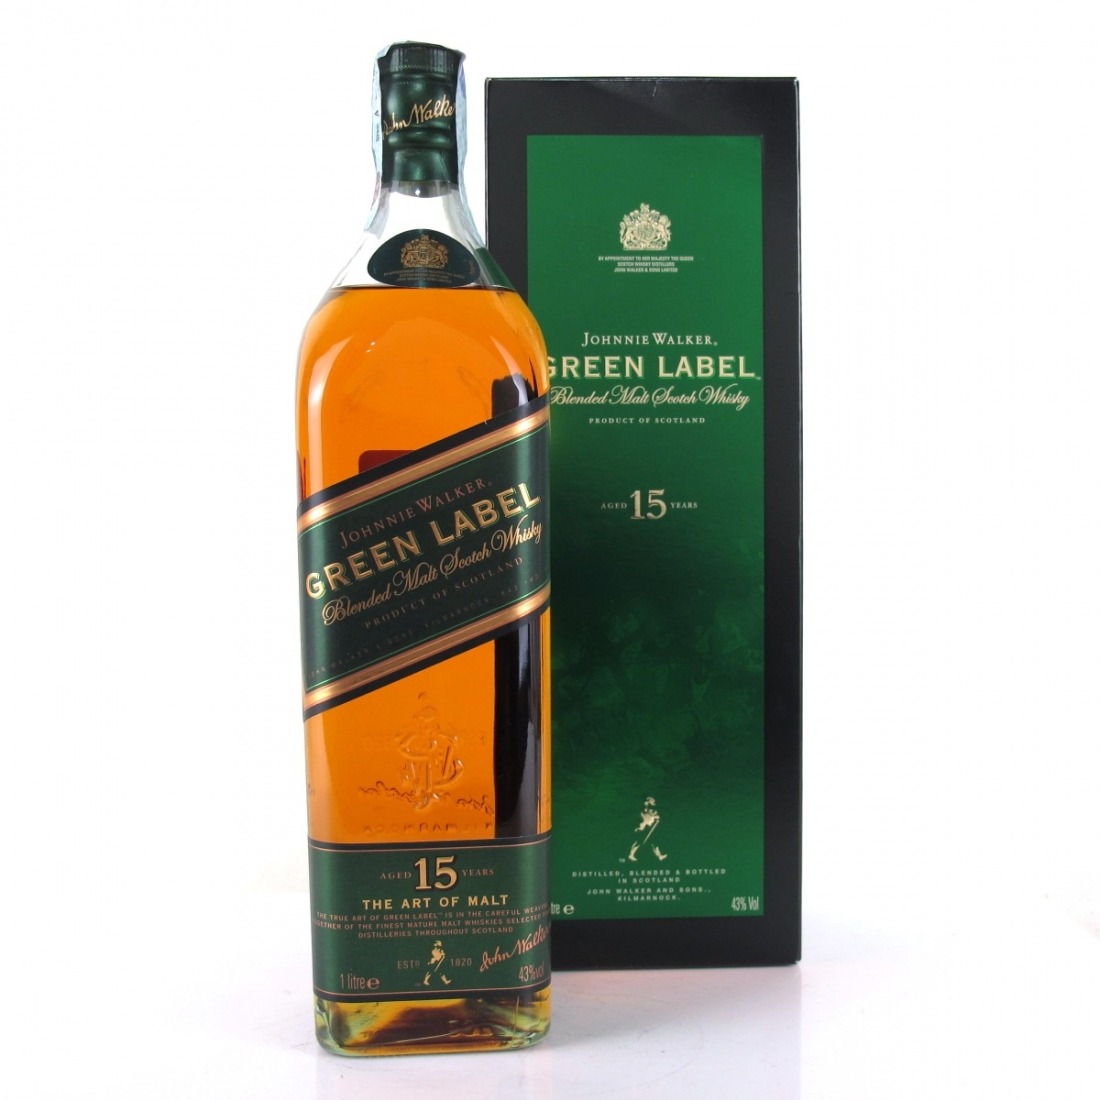 Johnnie Walker Green Label 15 Year Old 1 Litre